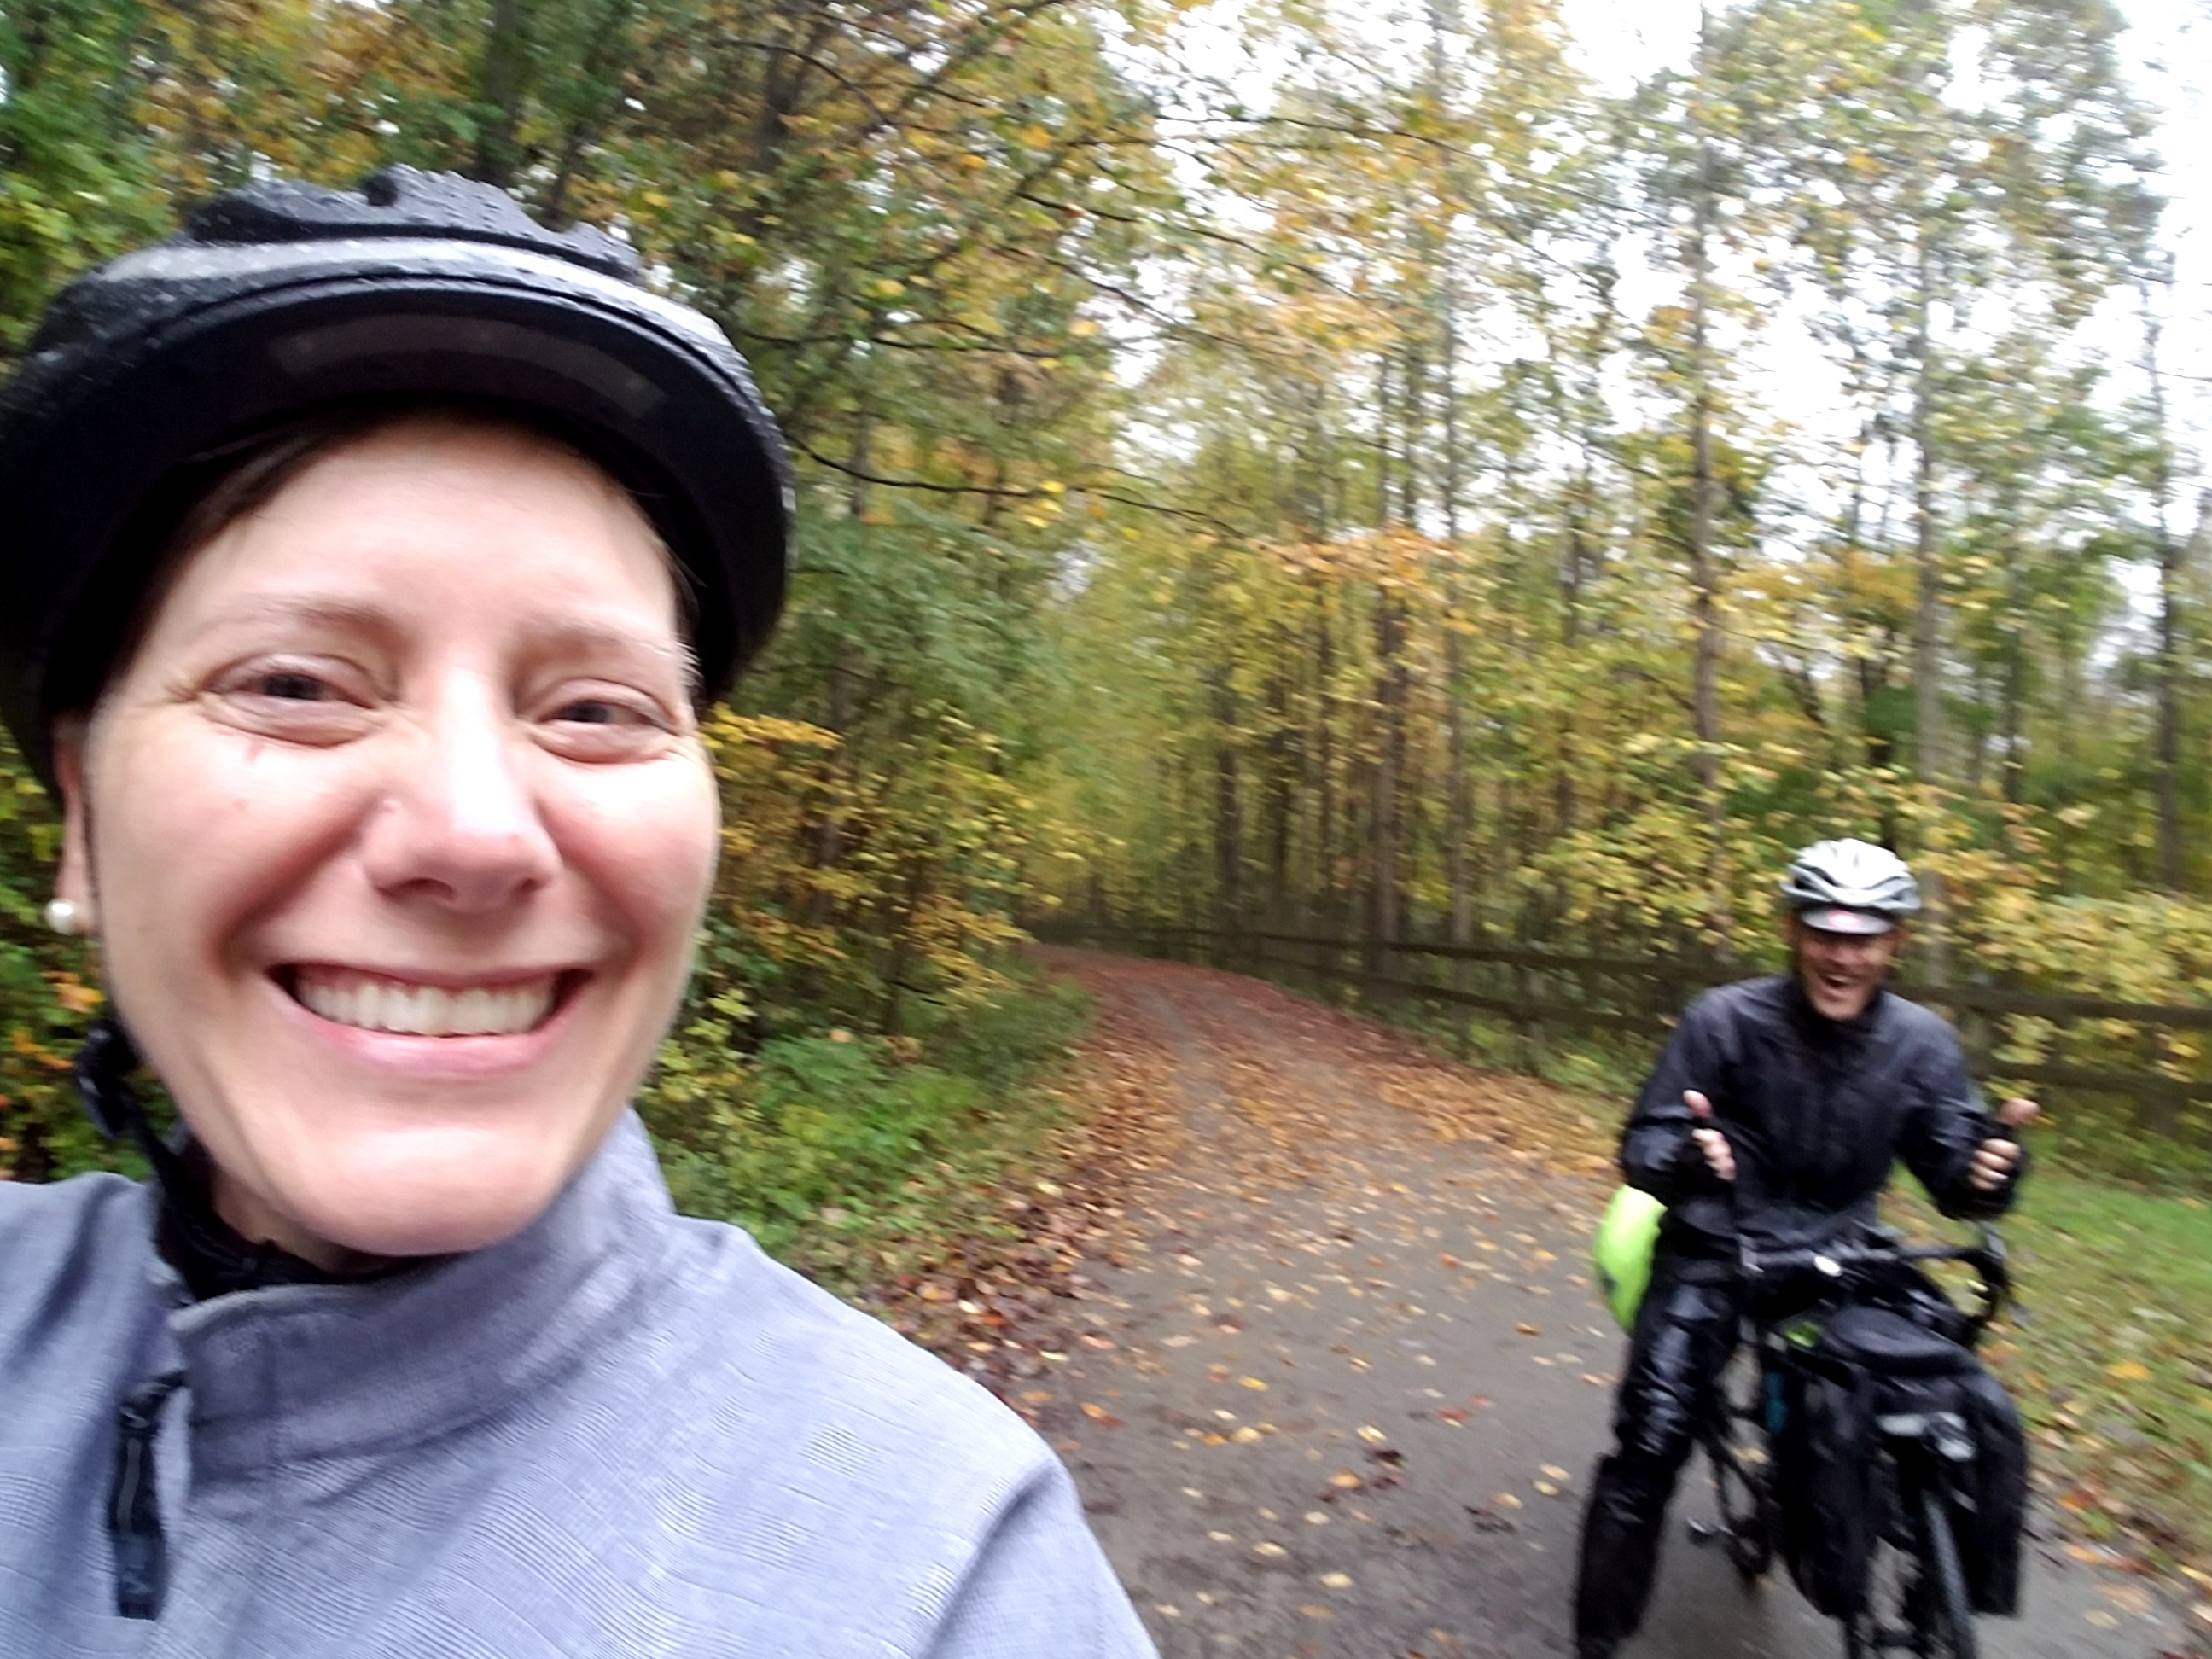 Bike Touring the Great Allegheny Passage: Days 3 and 4 on the GAP